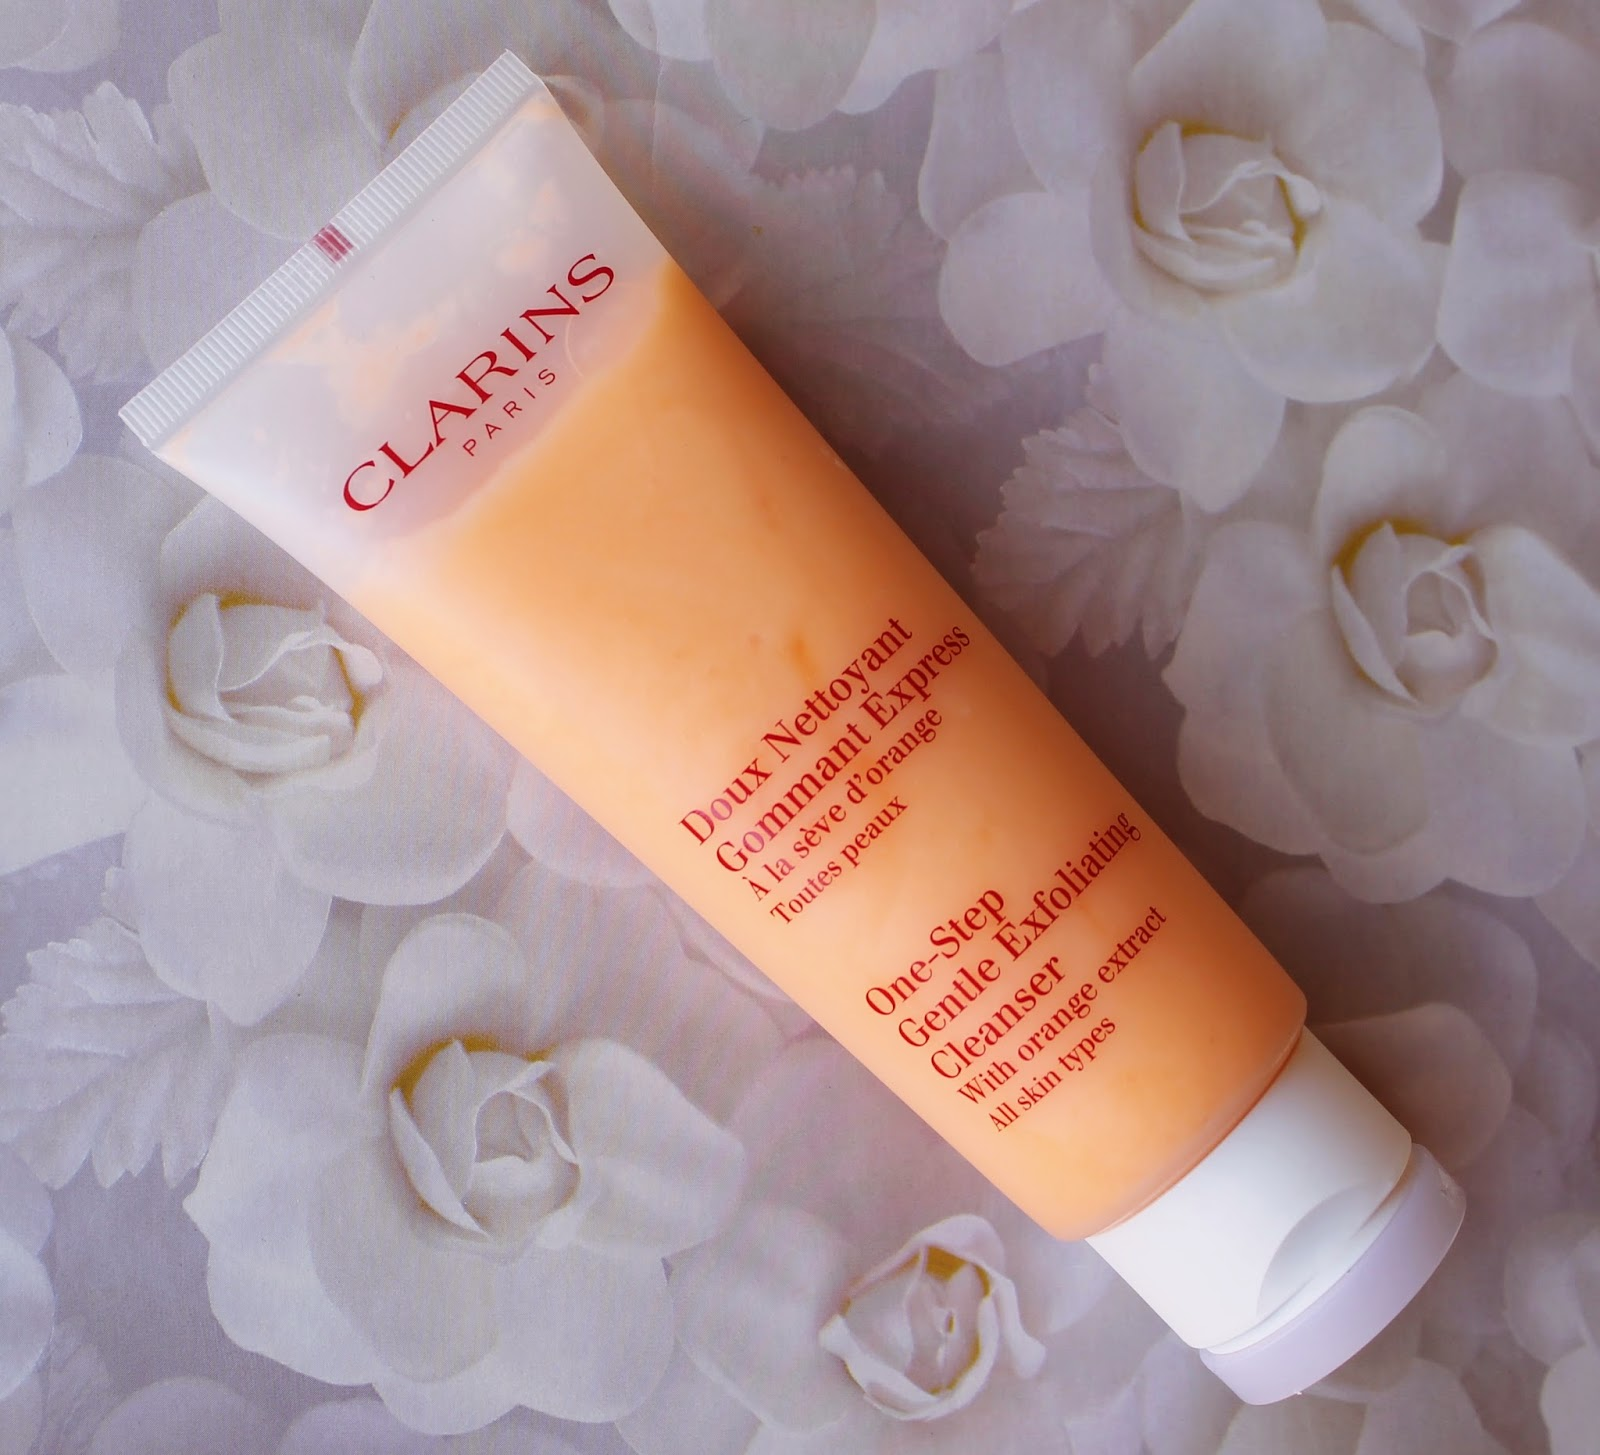 Clarins gommage